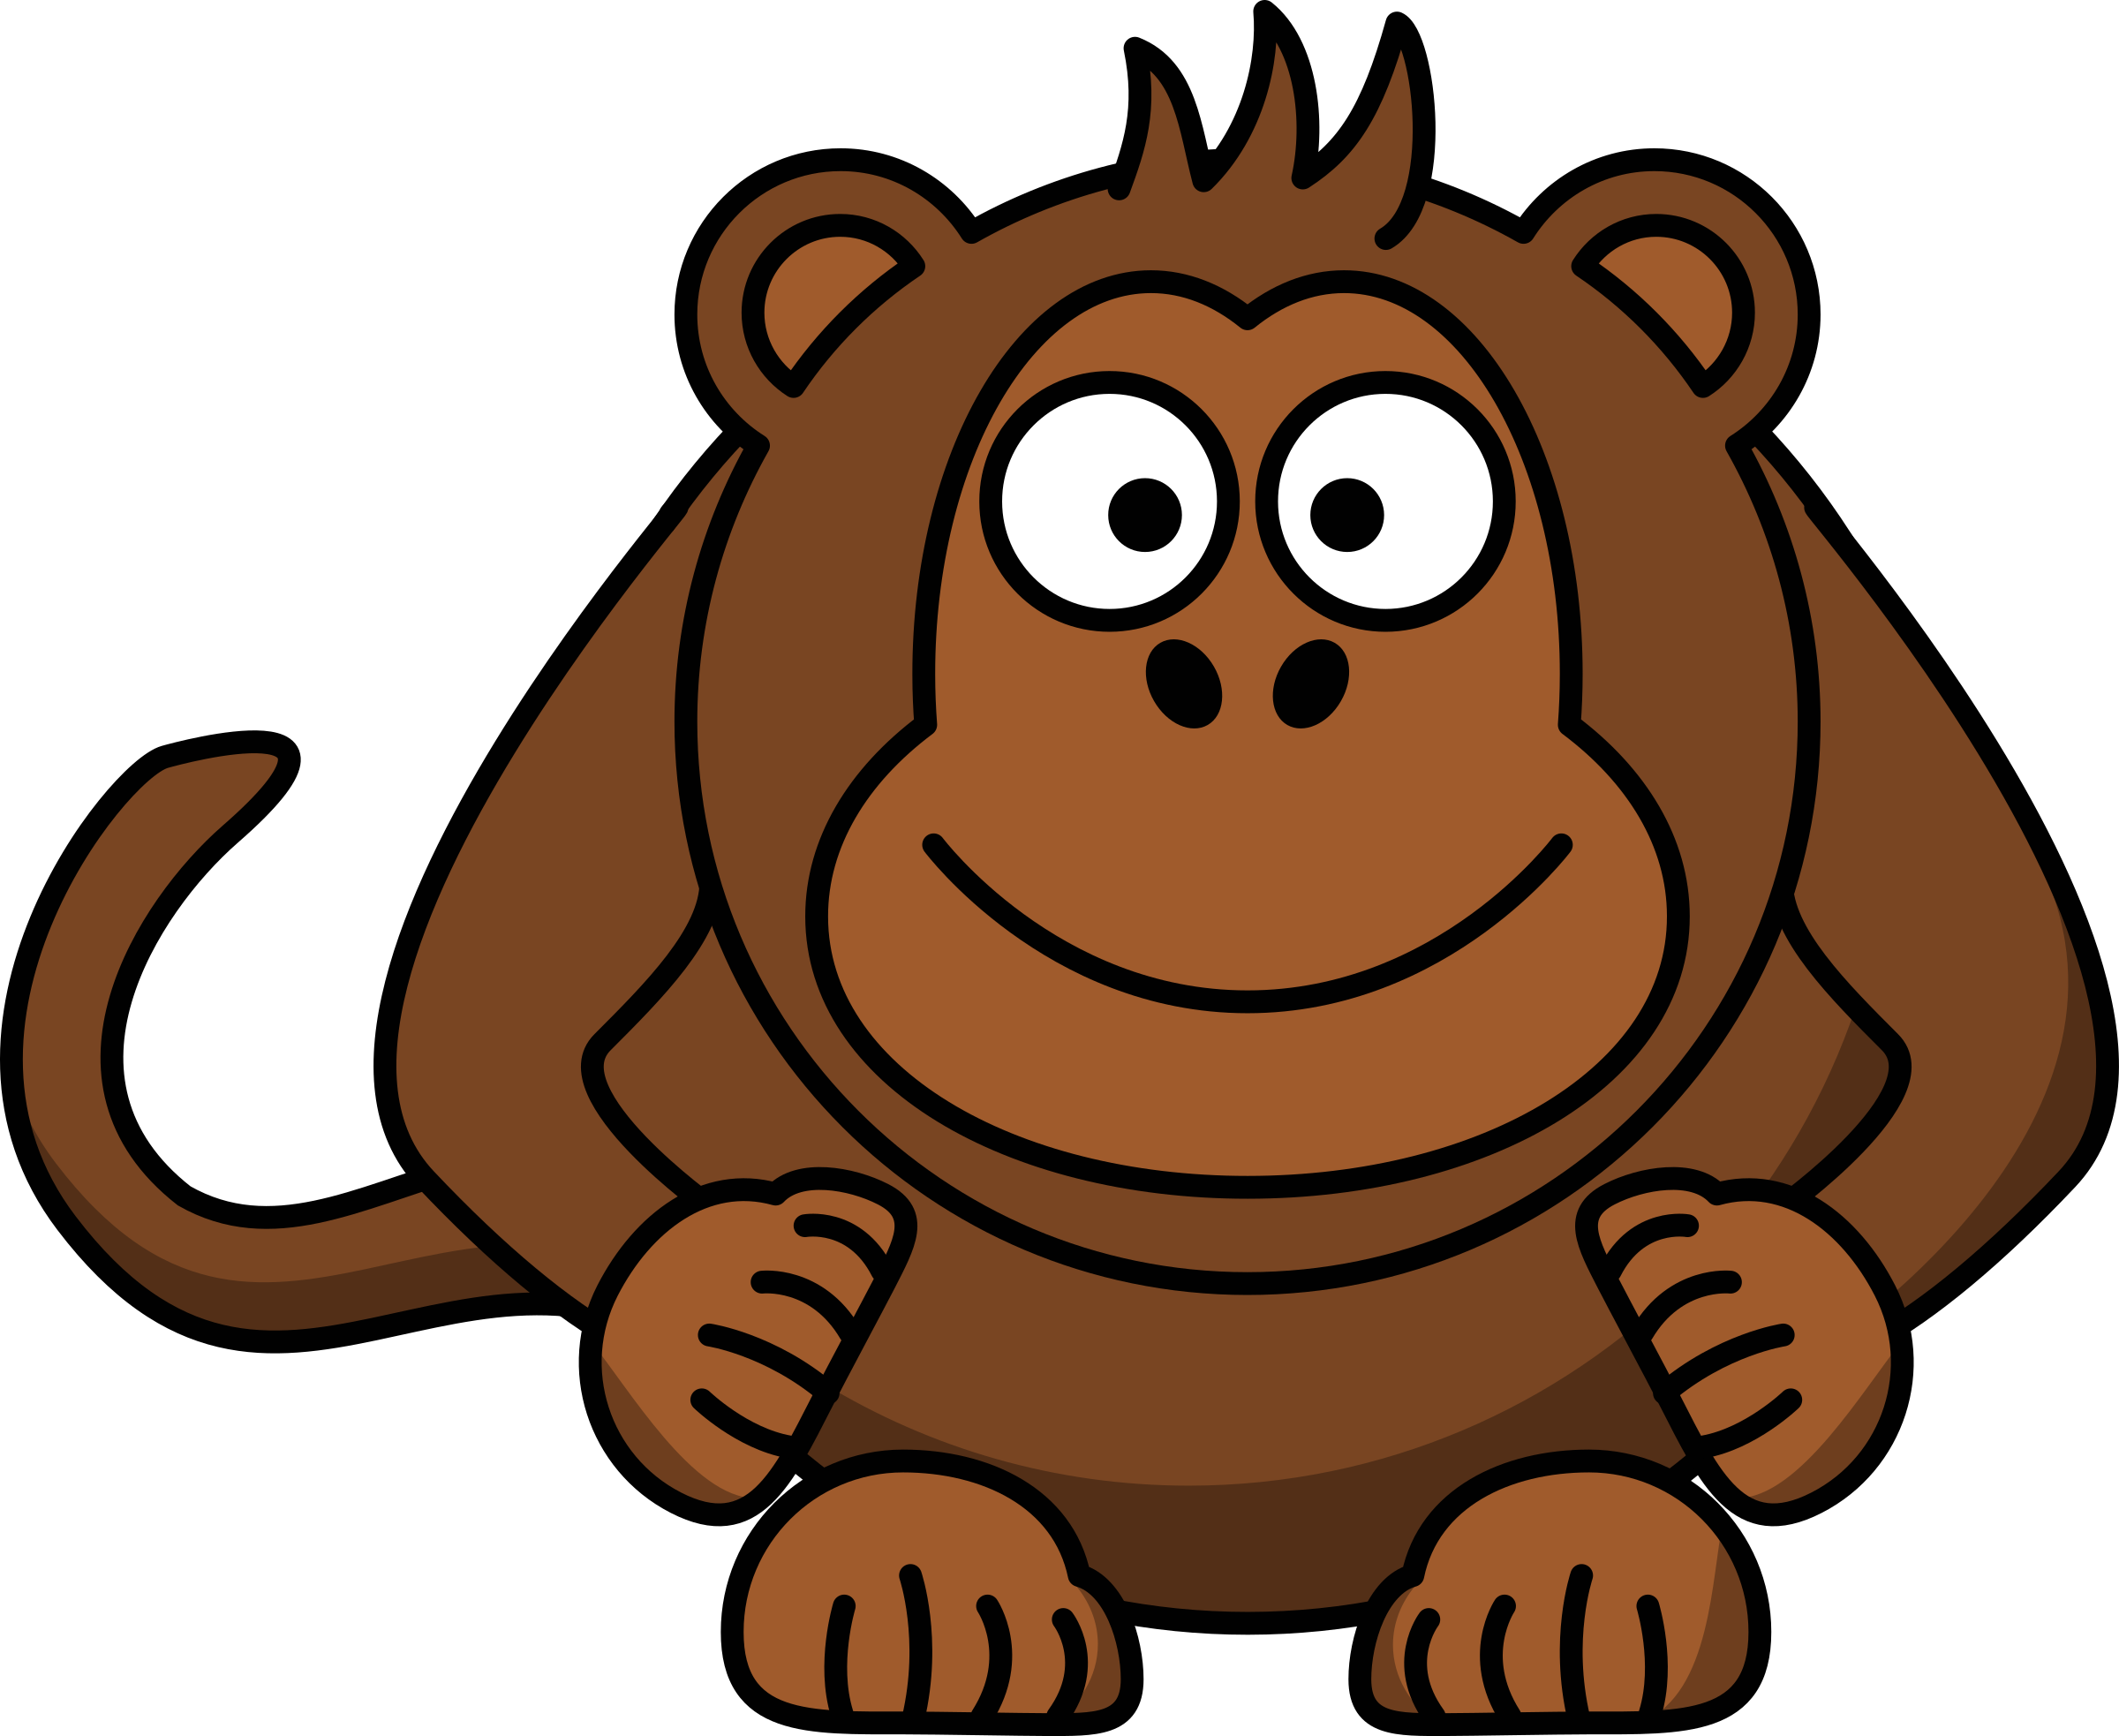 Monkey reading a book clipart image royalty free library Cartoon Monkey Photos (68+) image royalty free library